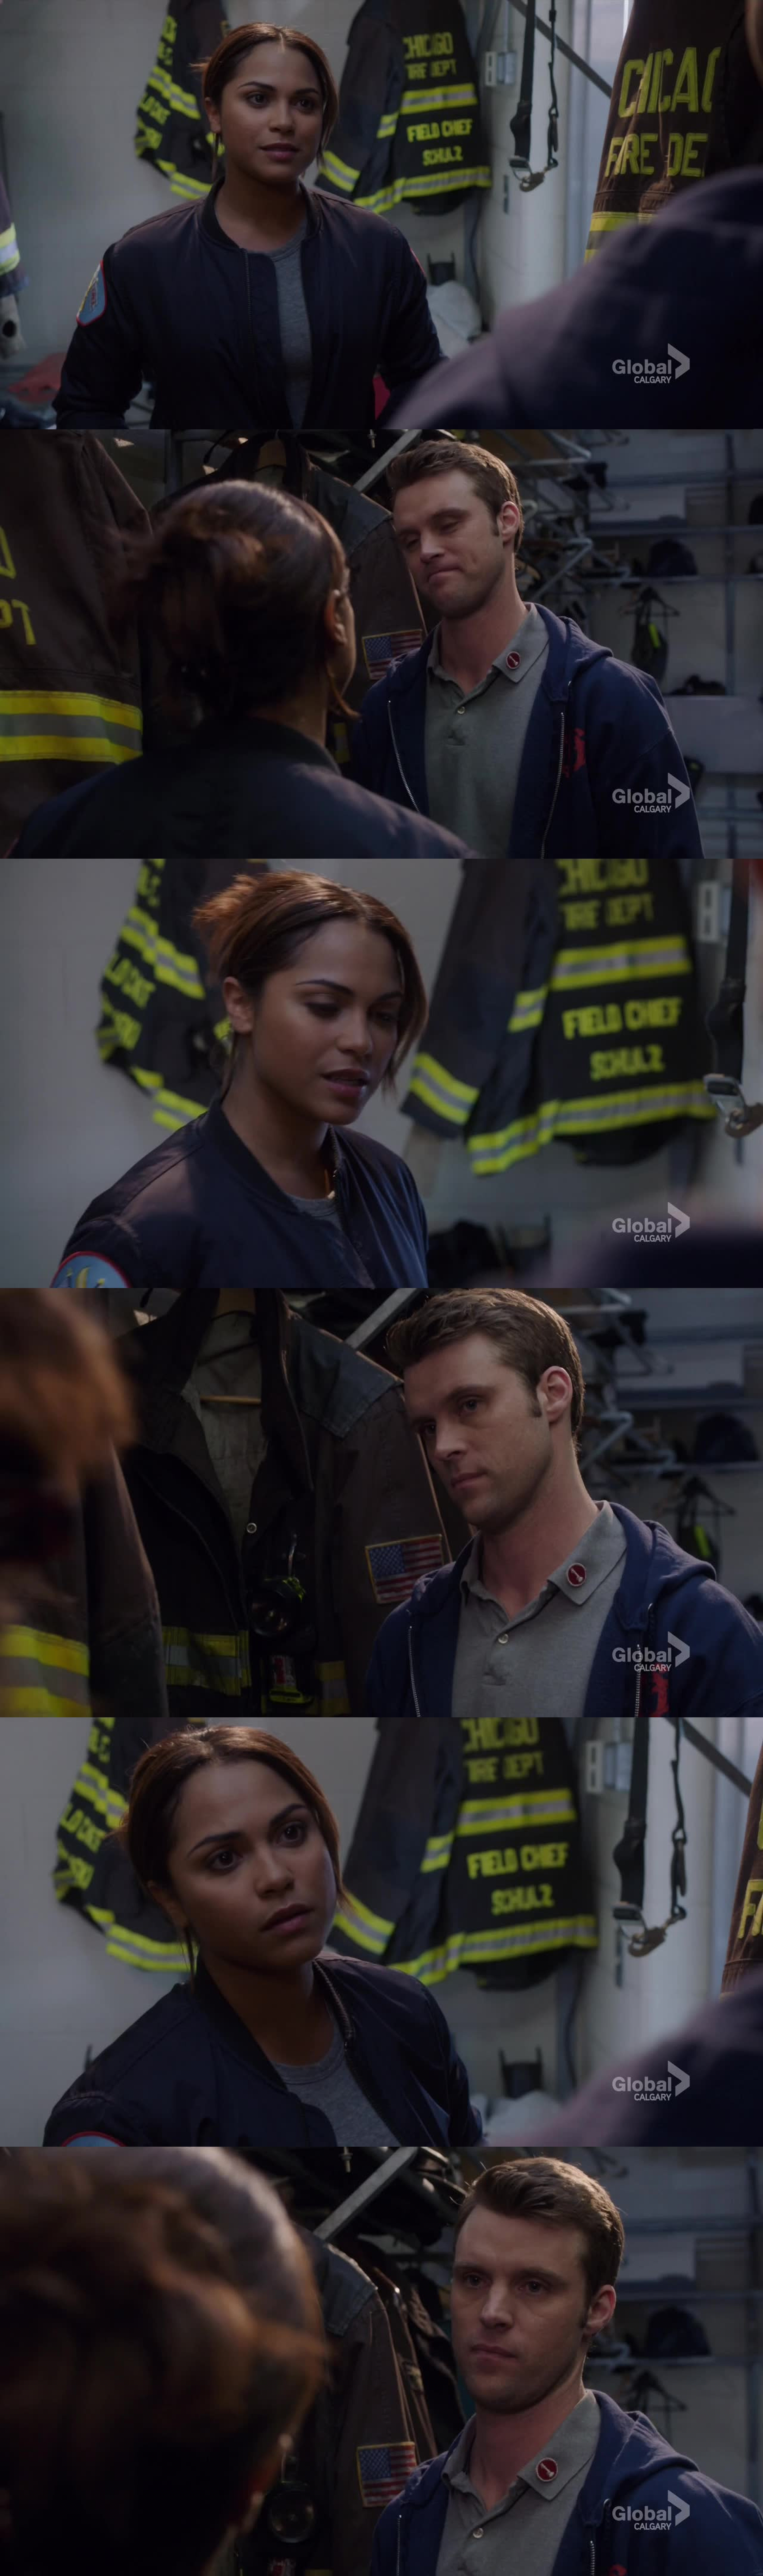 They are so not over!!!! So give us Dawsey back!!!! Now! The way she was scared for him!!! I mean come on!!! They still love each other and they want to get back together again!!! You can see it all over their faces! Bring us Matt&Gabby back together!!!!! #Dawsey #Matt&Gabby